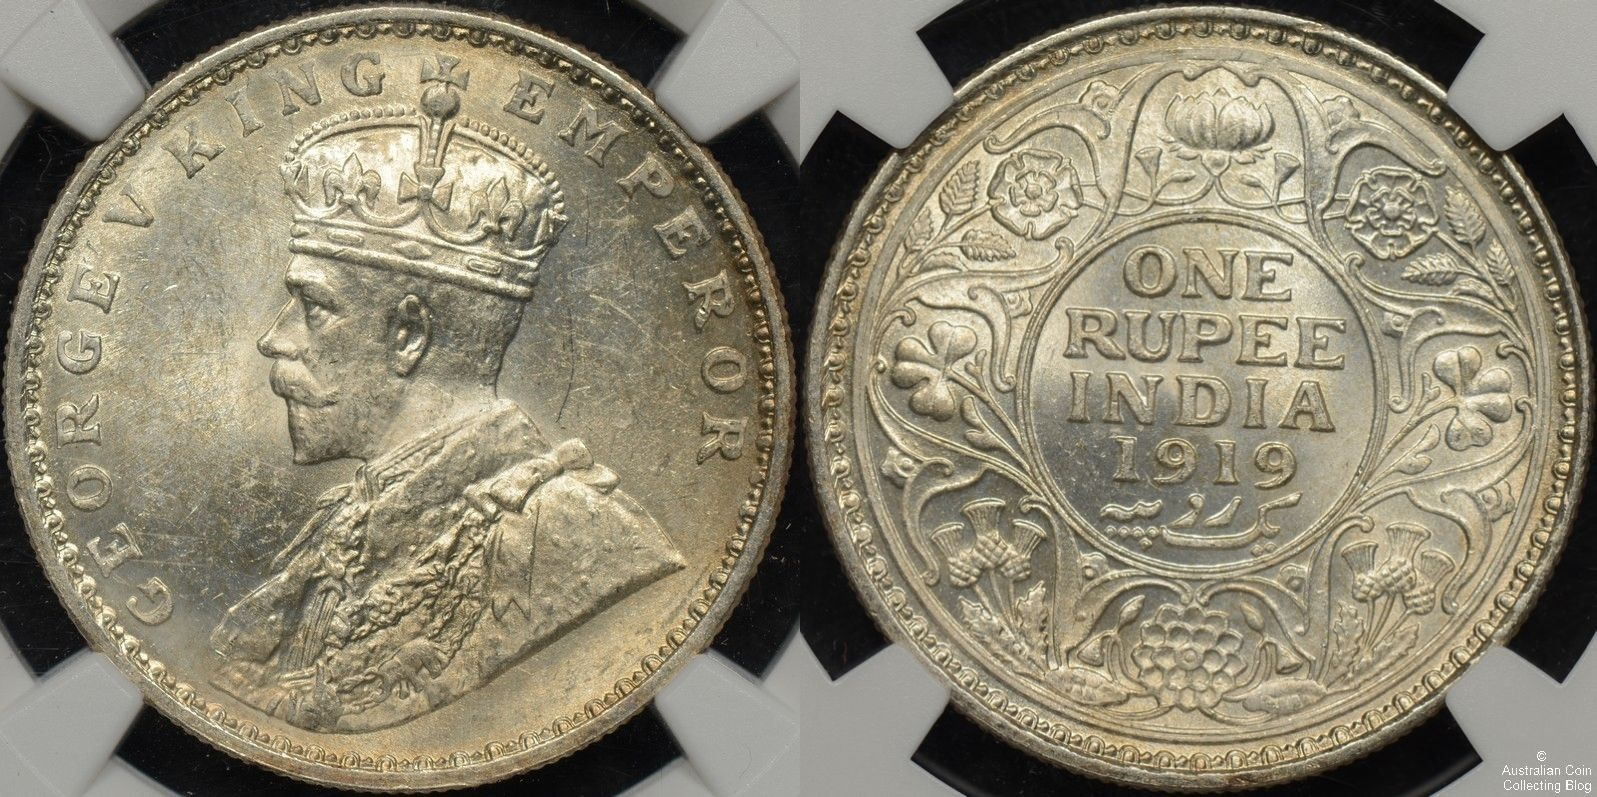 ngc india coins